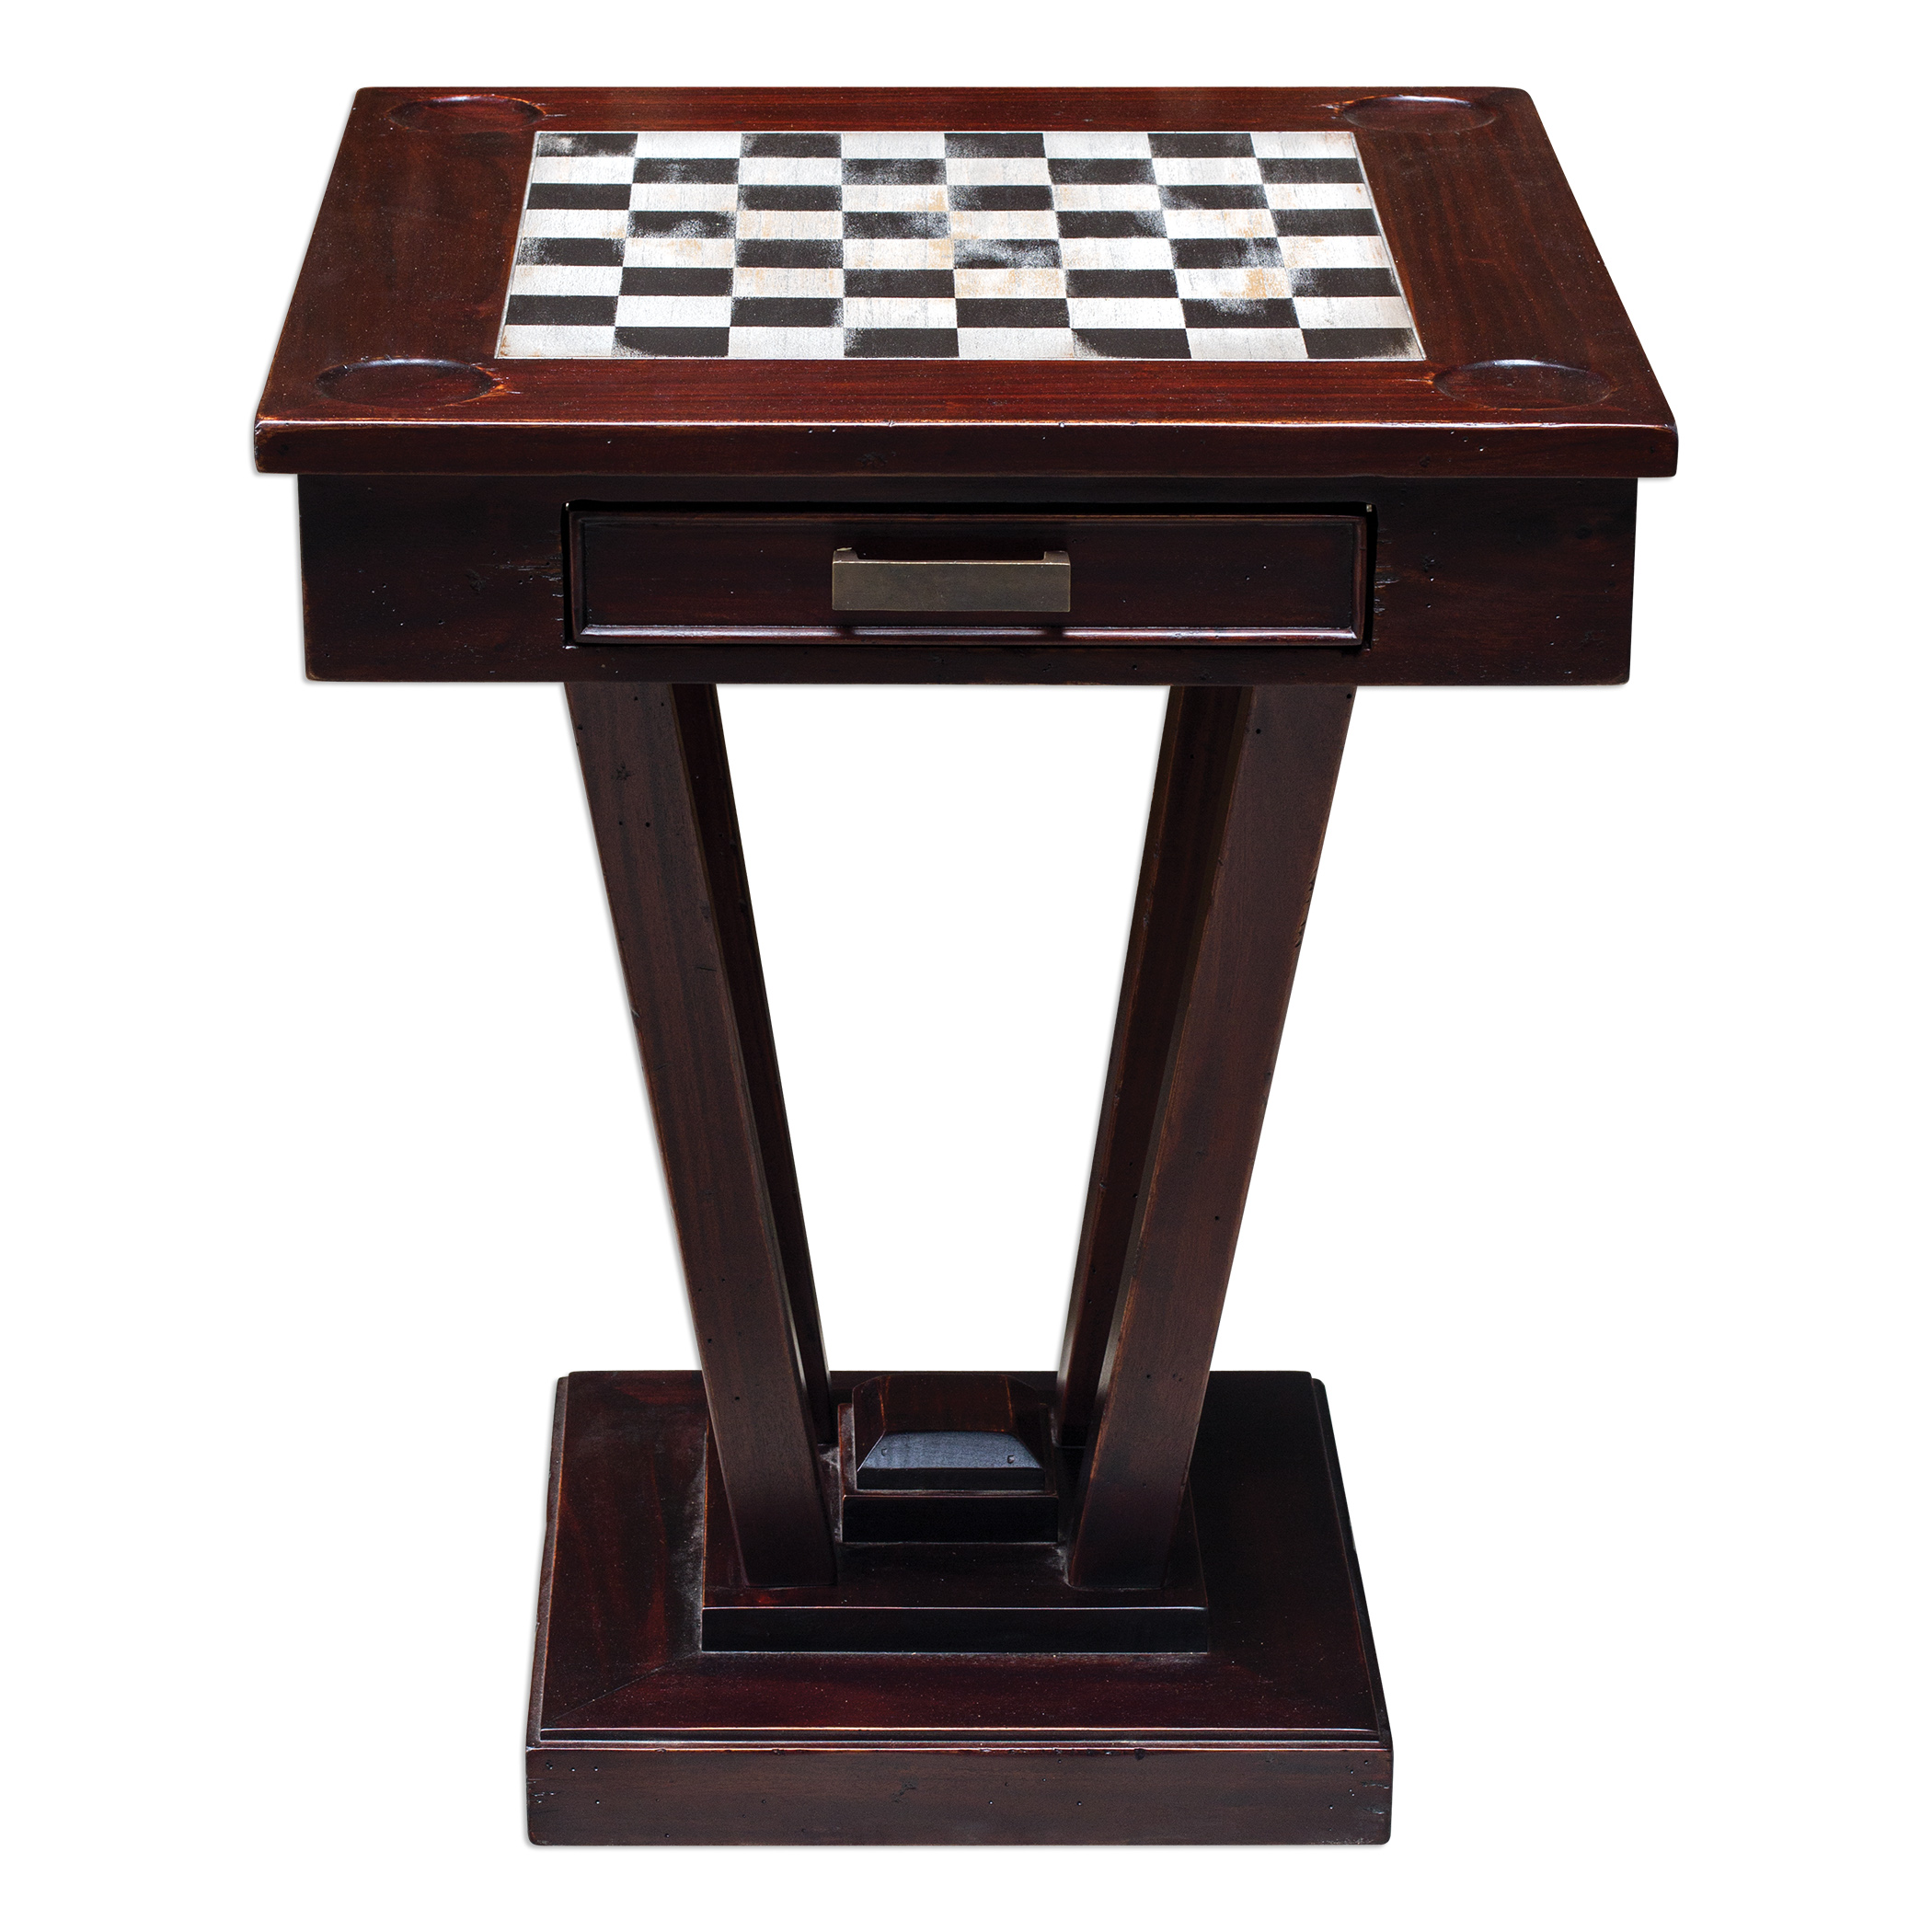 Uttermost Accent Furniture Fineas Wood Game Table - Item Number: 25716